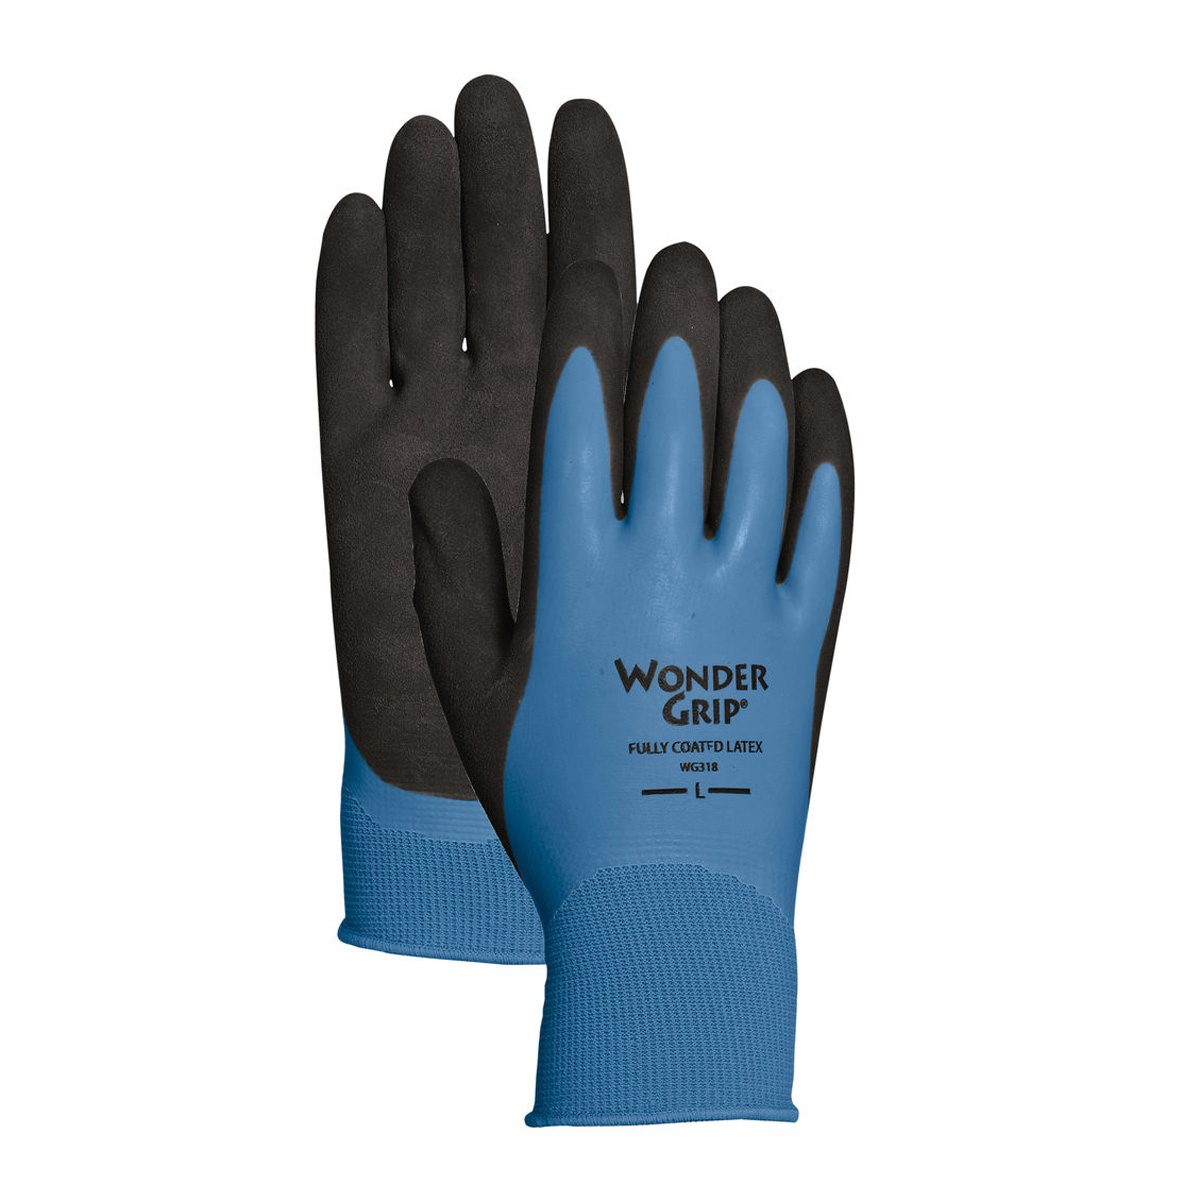 8589760_001v-1200x1200 Waterproof Gloves